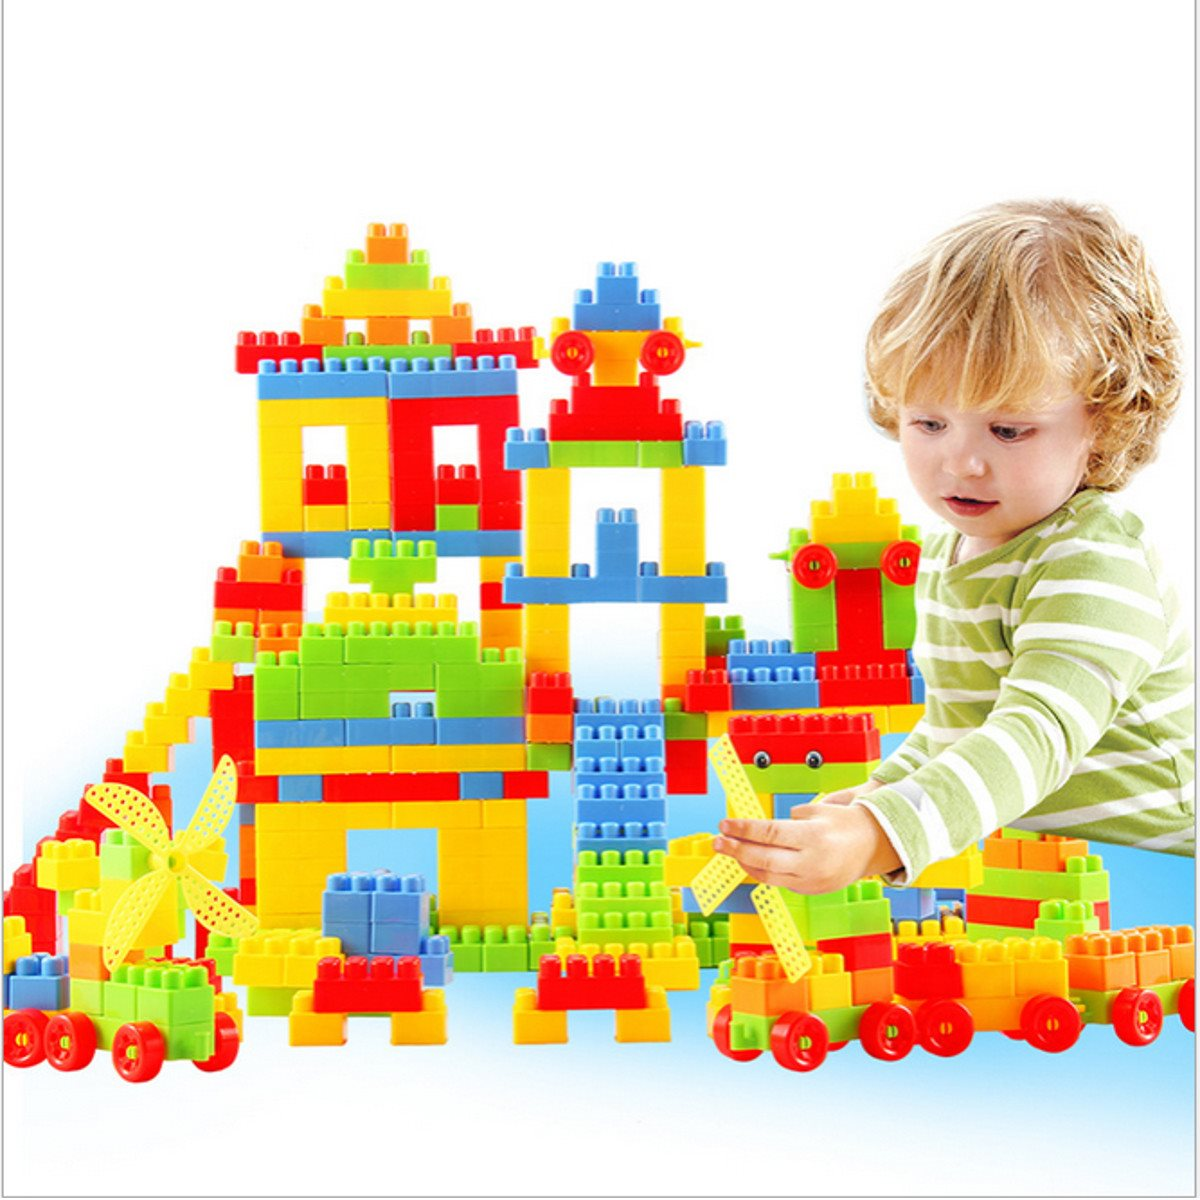 Building Toys For Teenagers : Pcs children puzzle educational building bricks toy